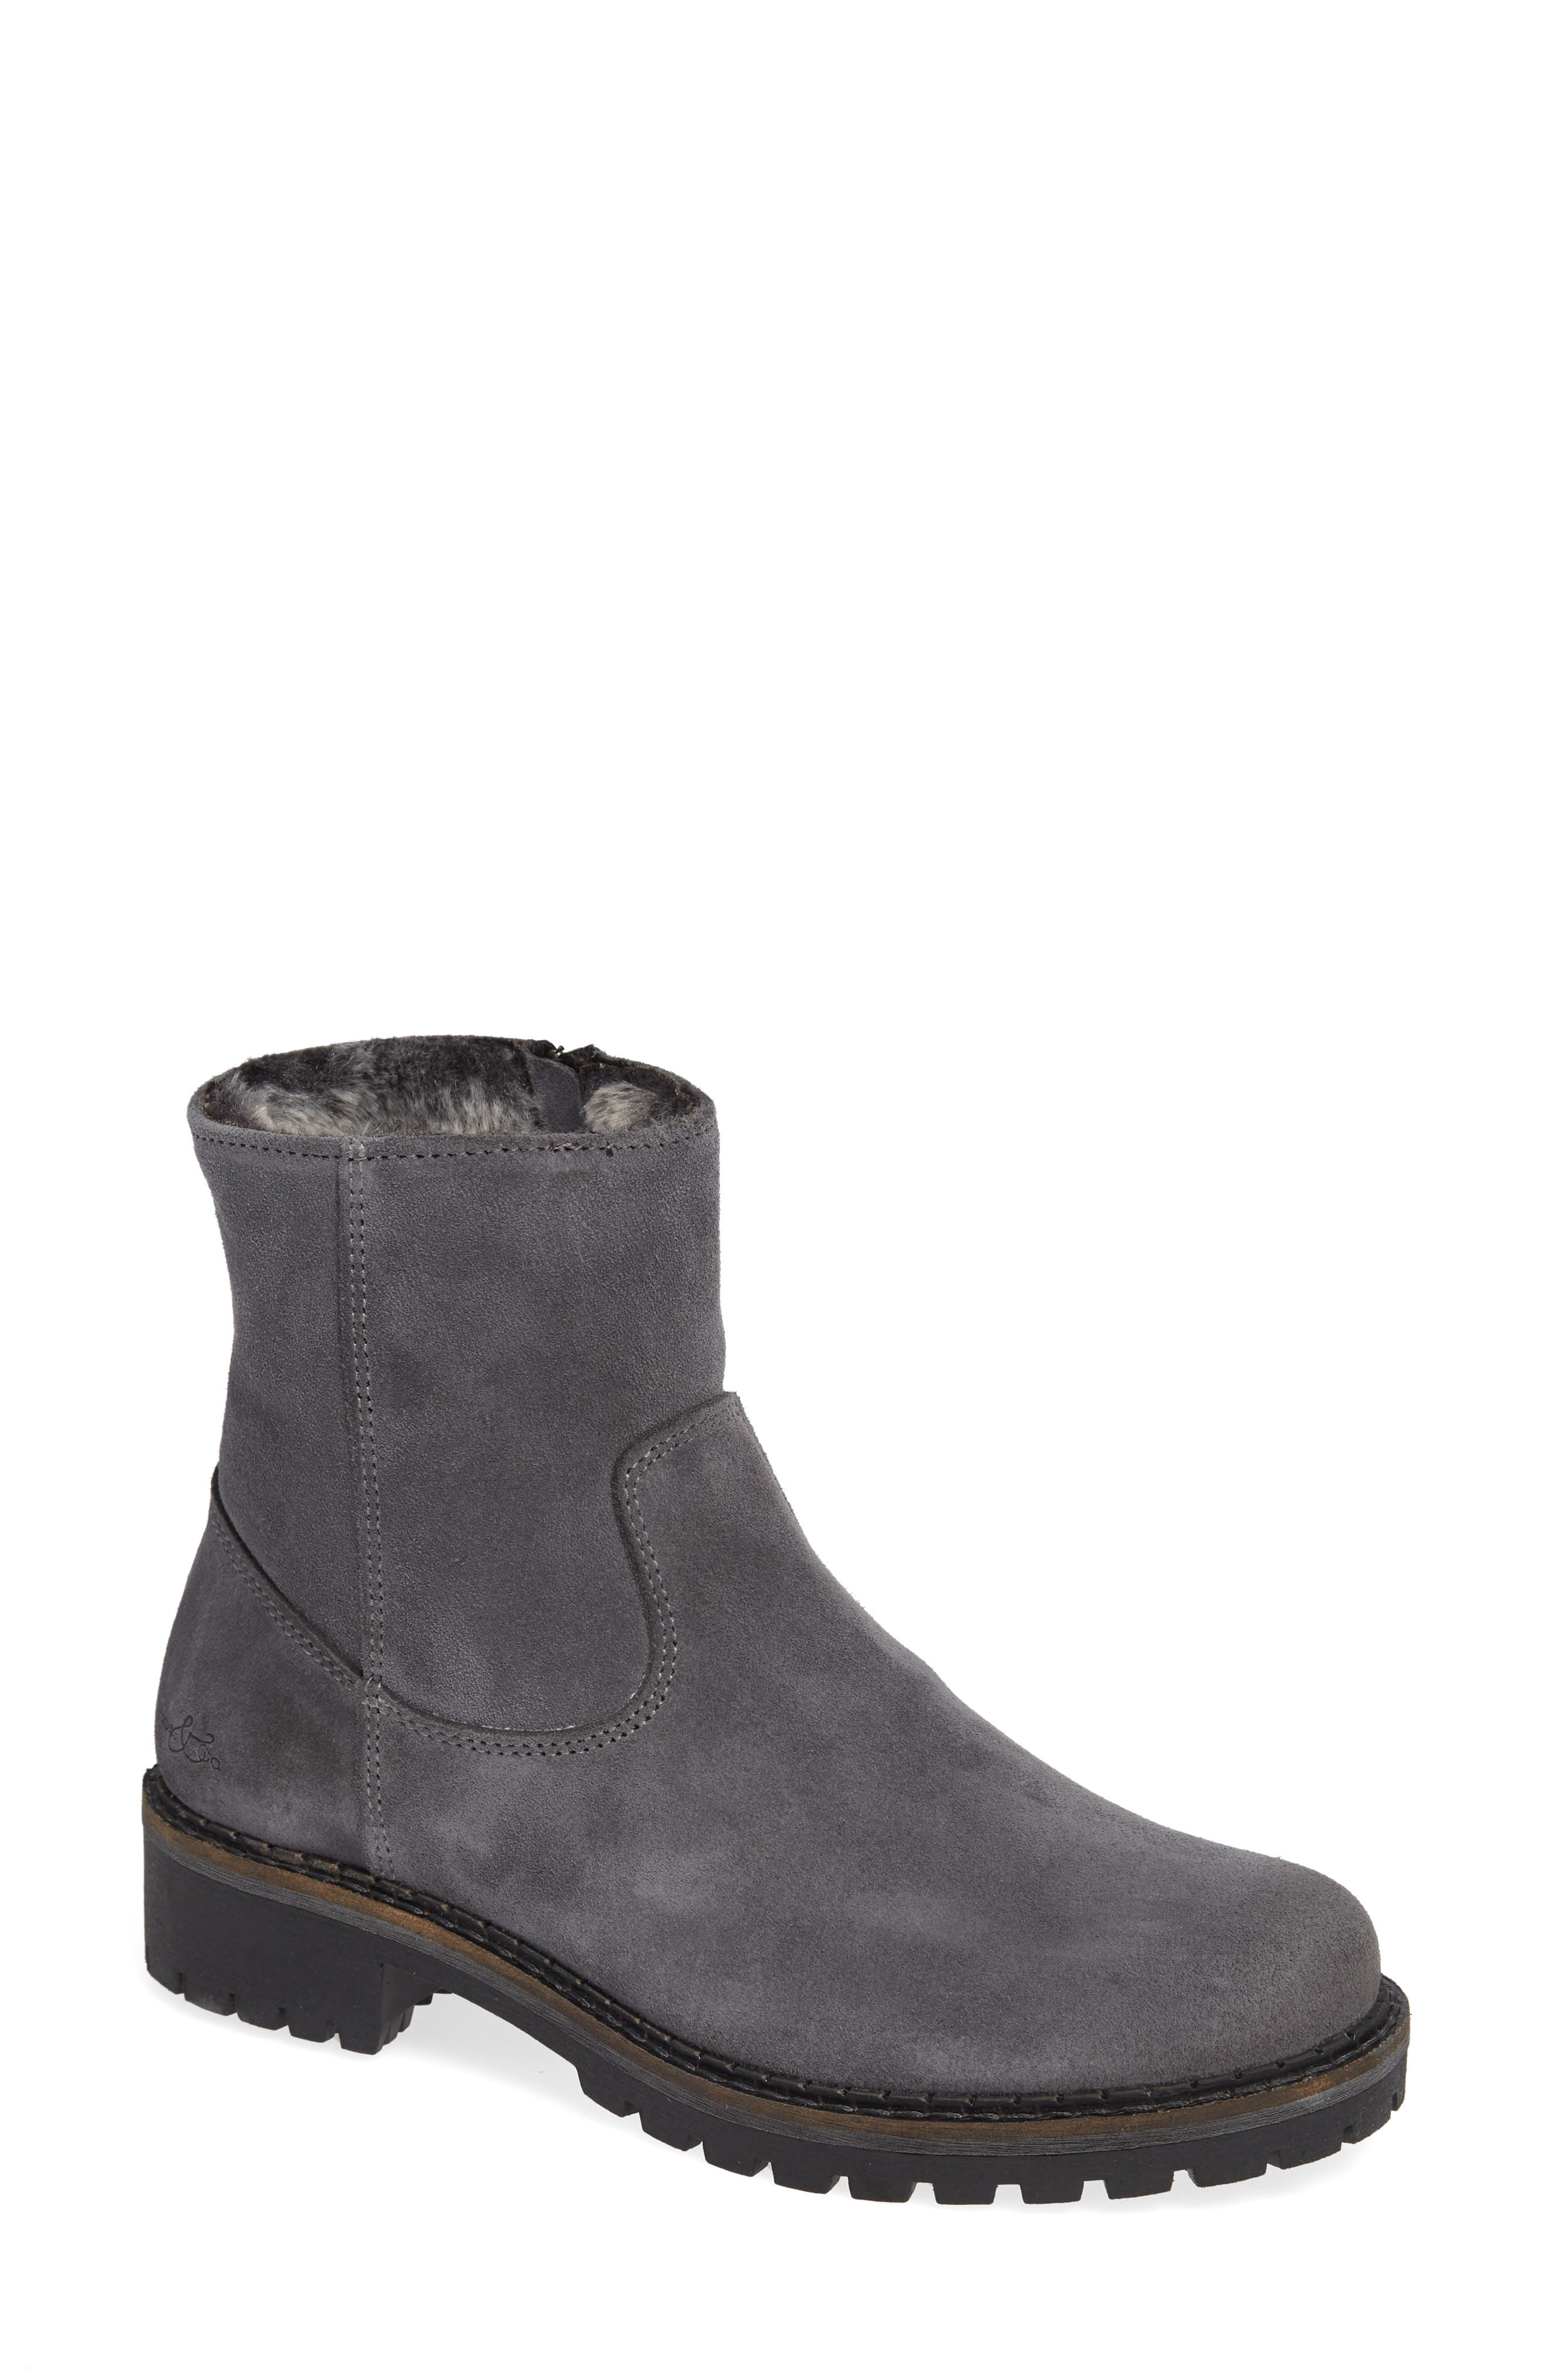 Bos. & Co. Host Faux Fur Lined Boot, Grey